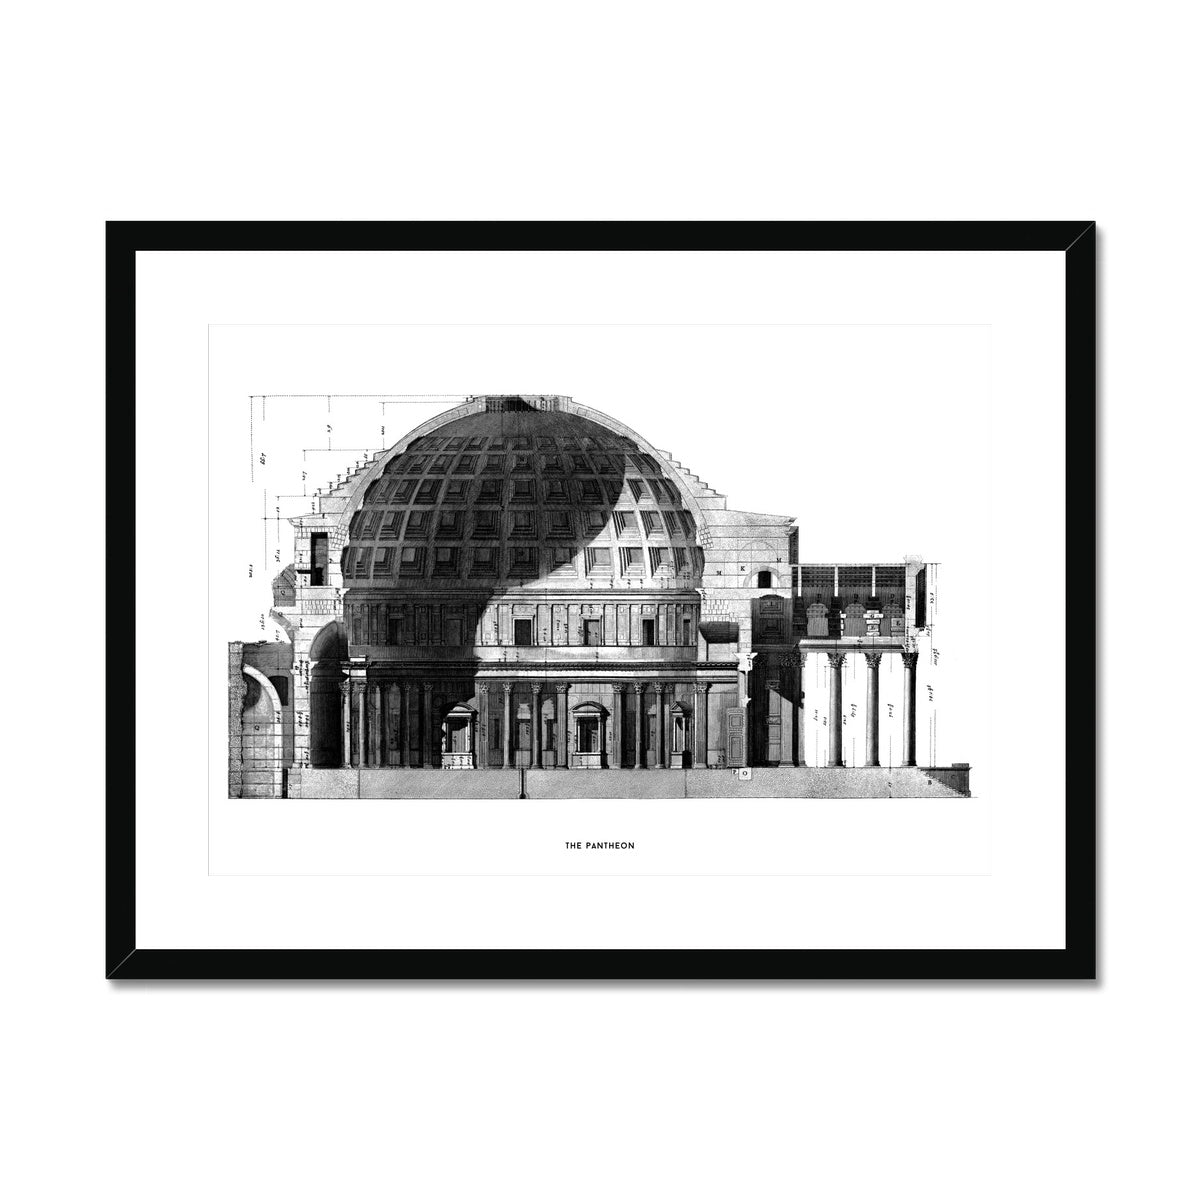 The Pantheon - Cross Section -  Framed & Mounted Print